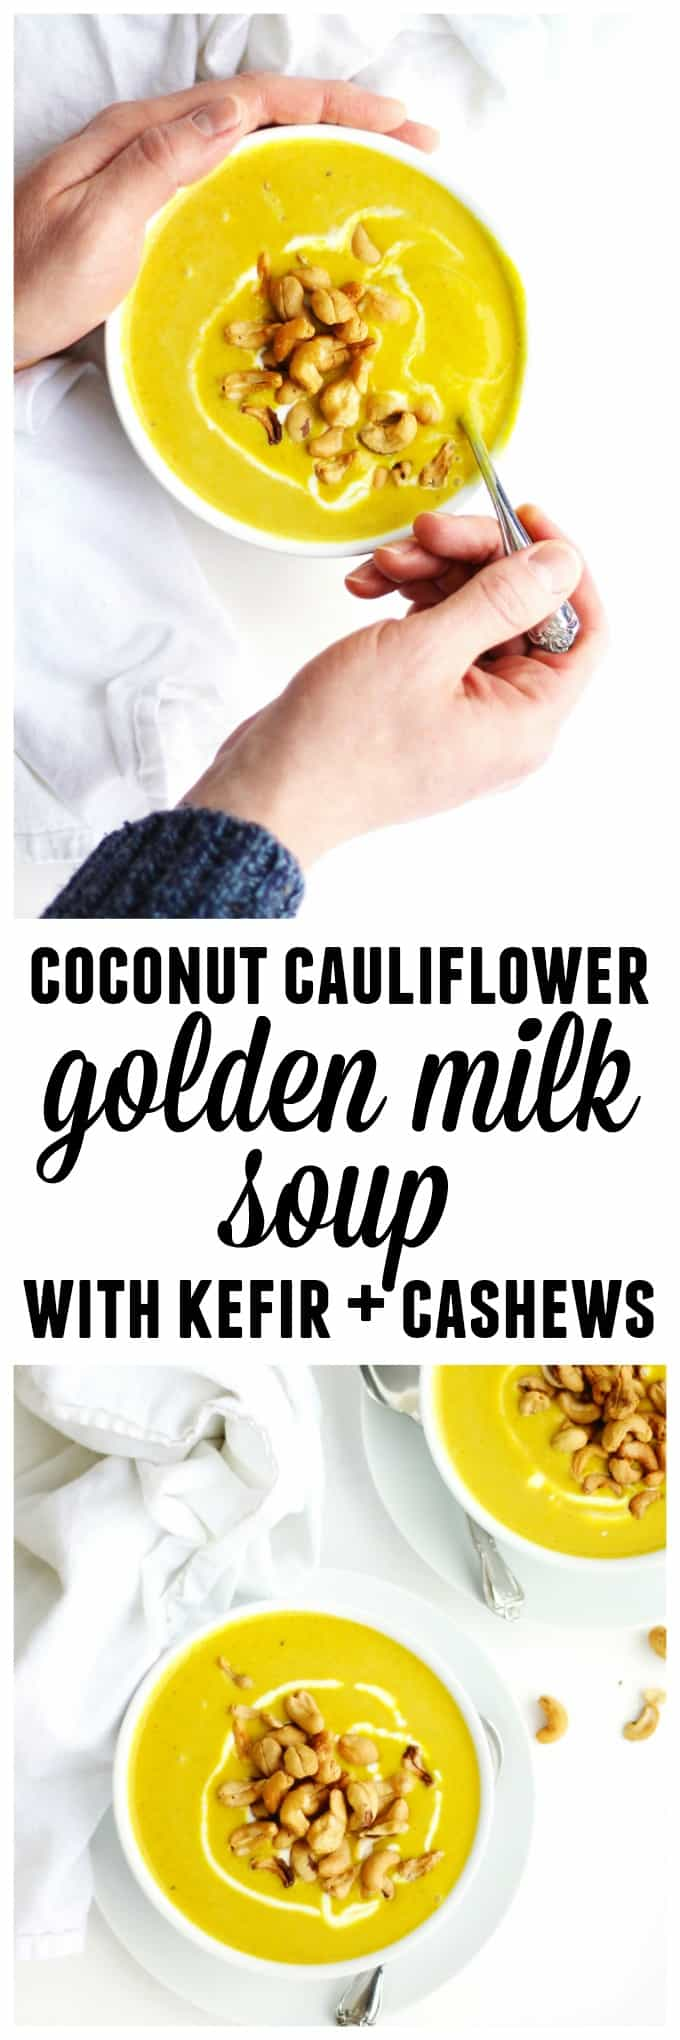 Coconut cauliflower golden soup with kefir recipe! A healing, turmeric golden milk soup with creamy cauliflower, sweet coconut, and tangy kefir. // Rhubarbarians